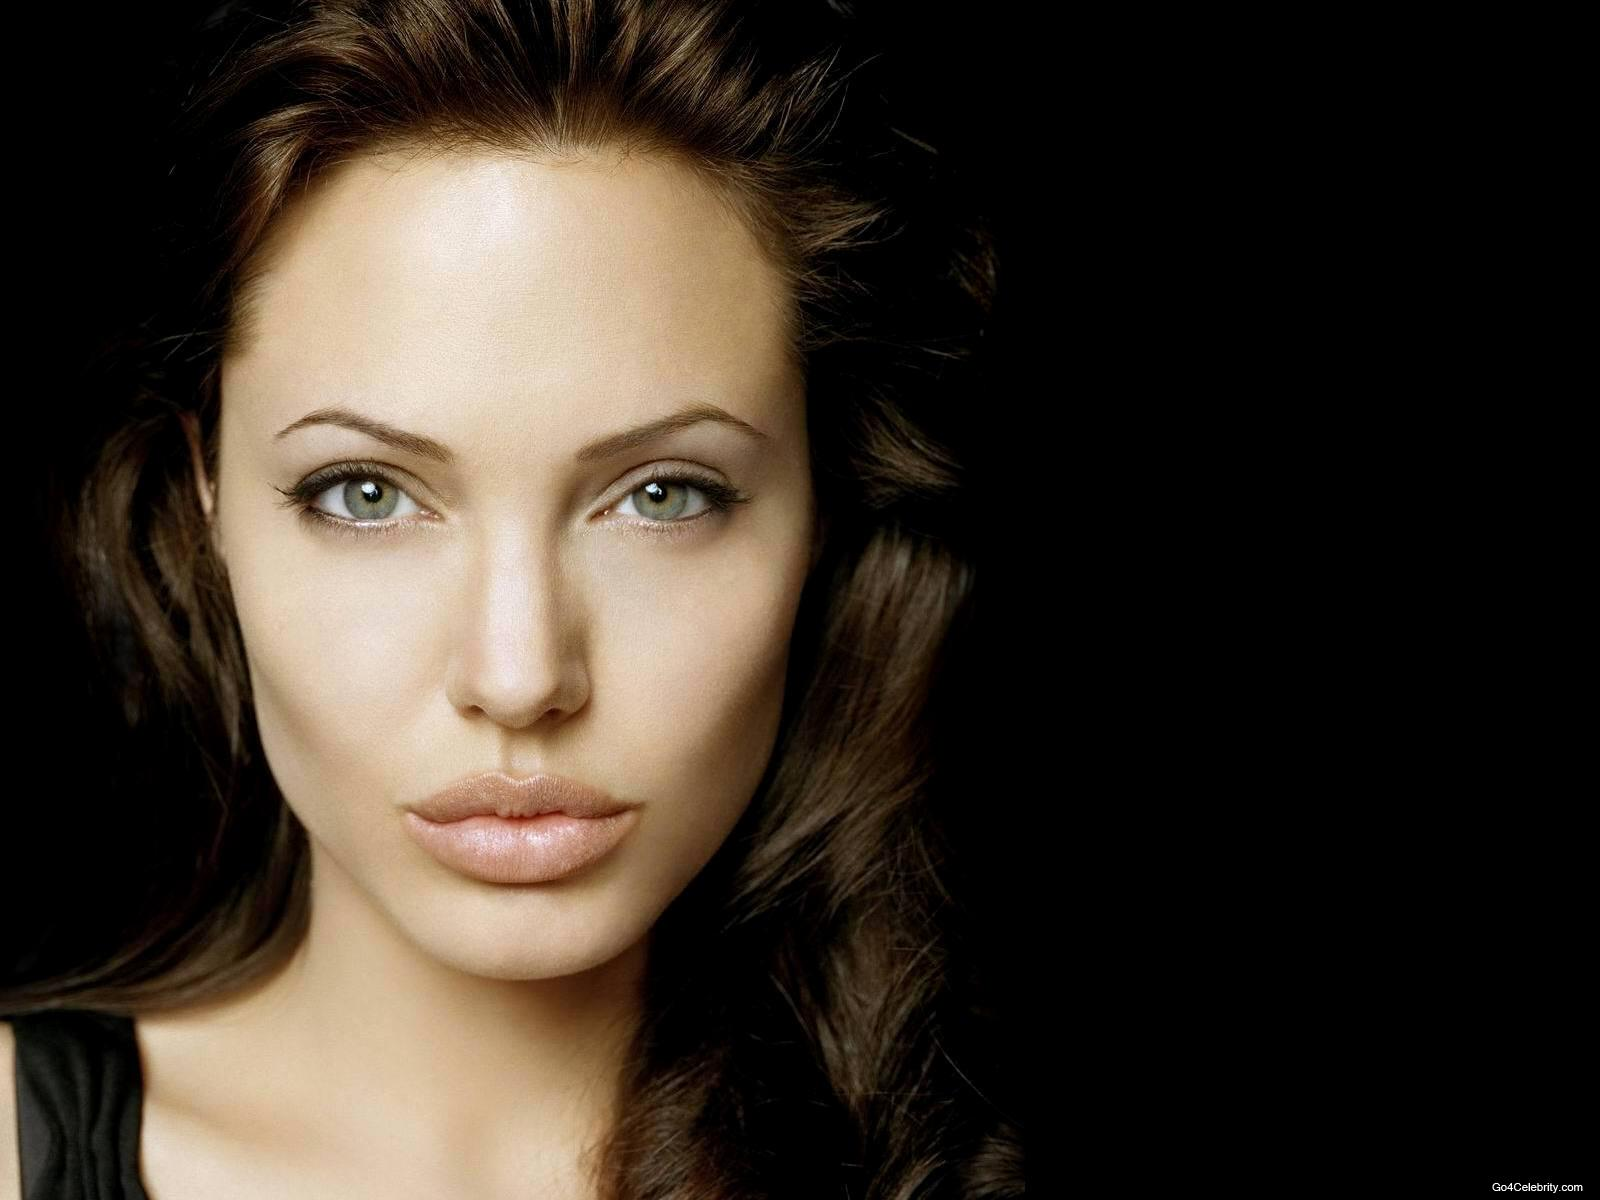 Angelina jolie wallpapers high resolution and quality download - High resolution wallpaper celebrity ...